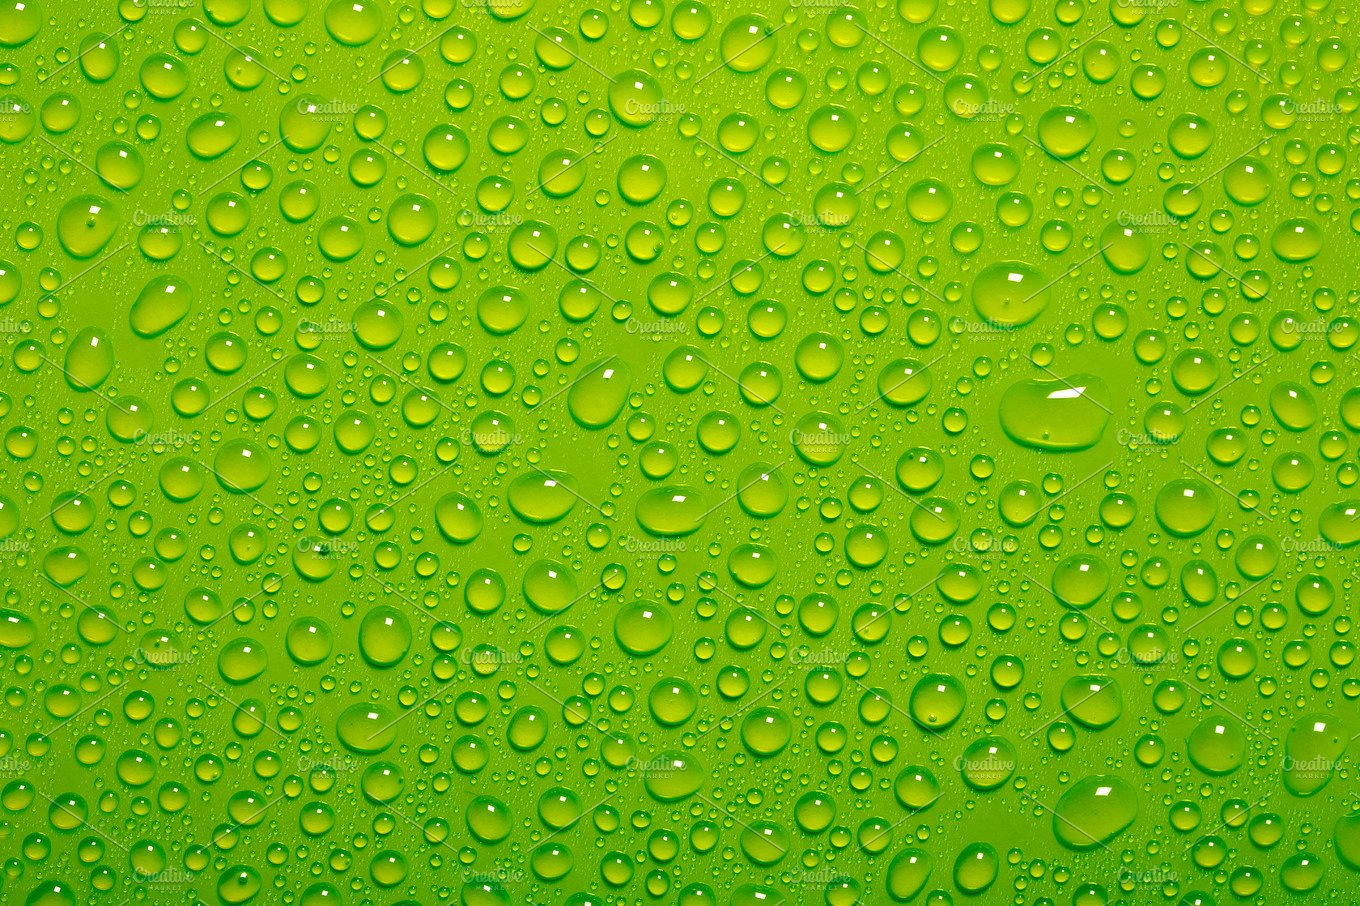 water drops on green background ~ Nature Photos ~ Creative ...